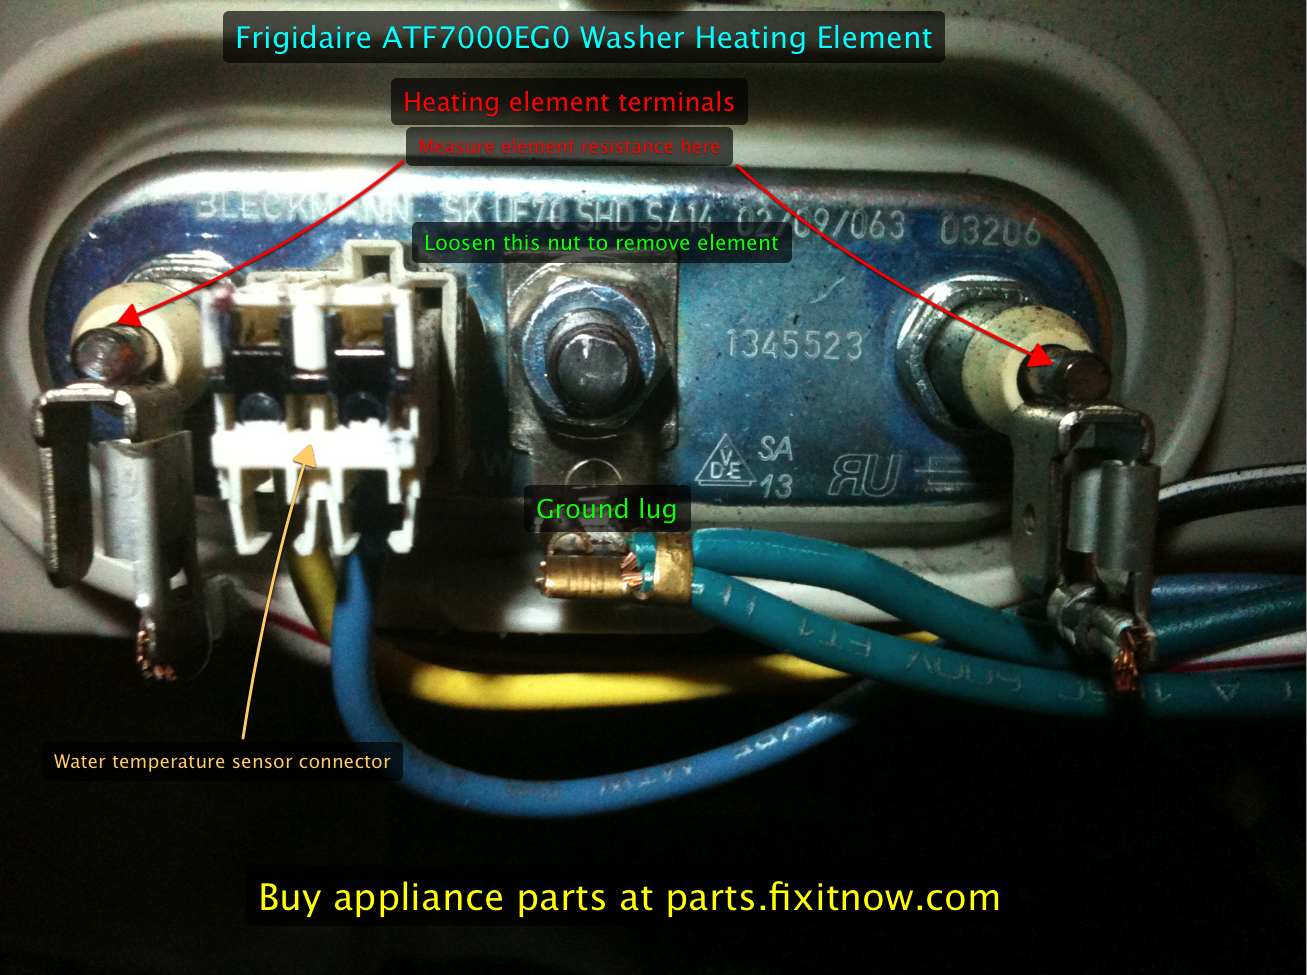 Frigidaire ATF7000EG0 Washer Heating Element